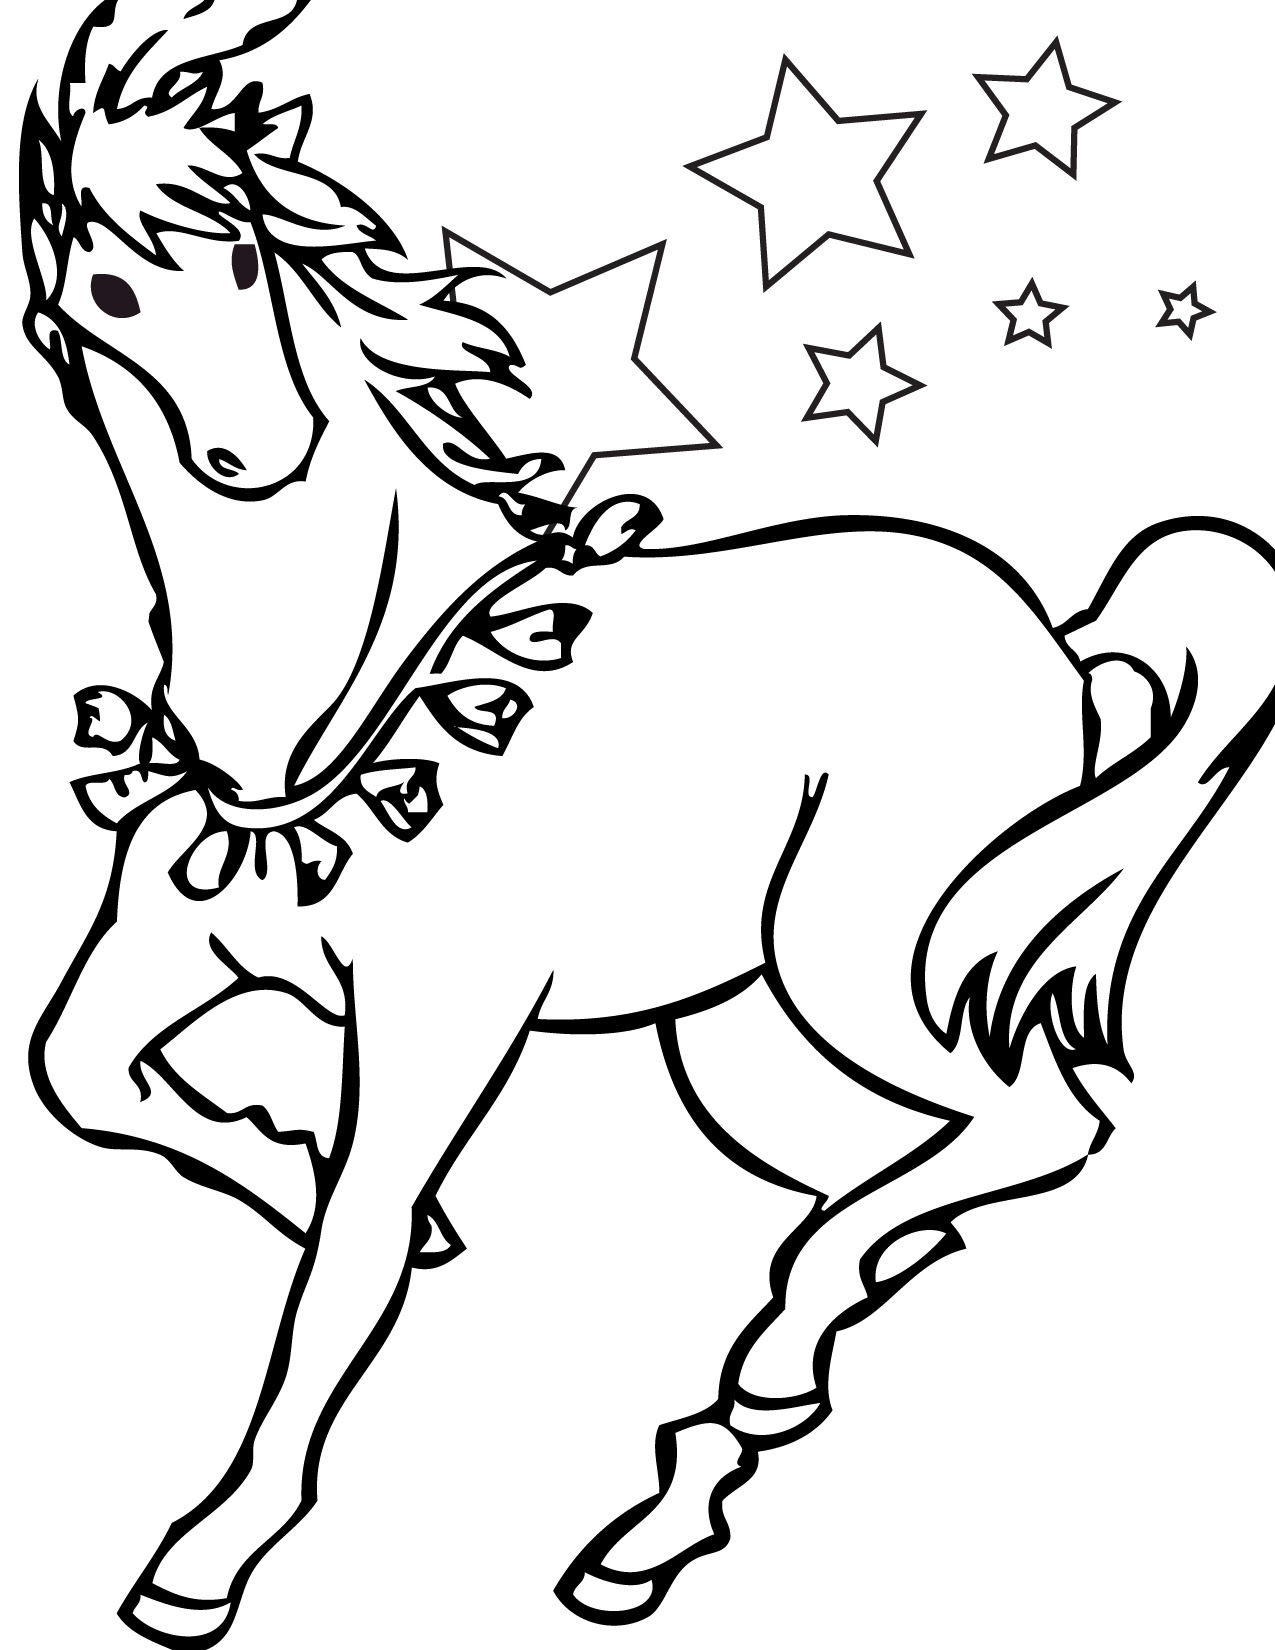 horse and pony coloring pages - photo#39